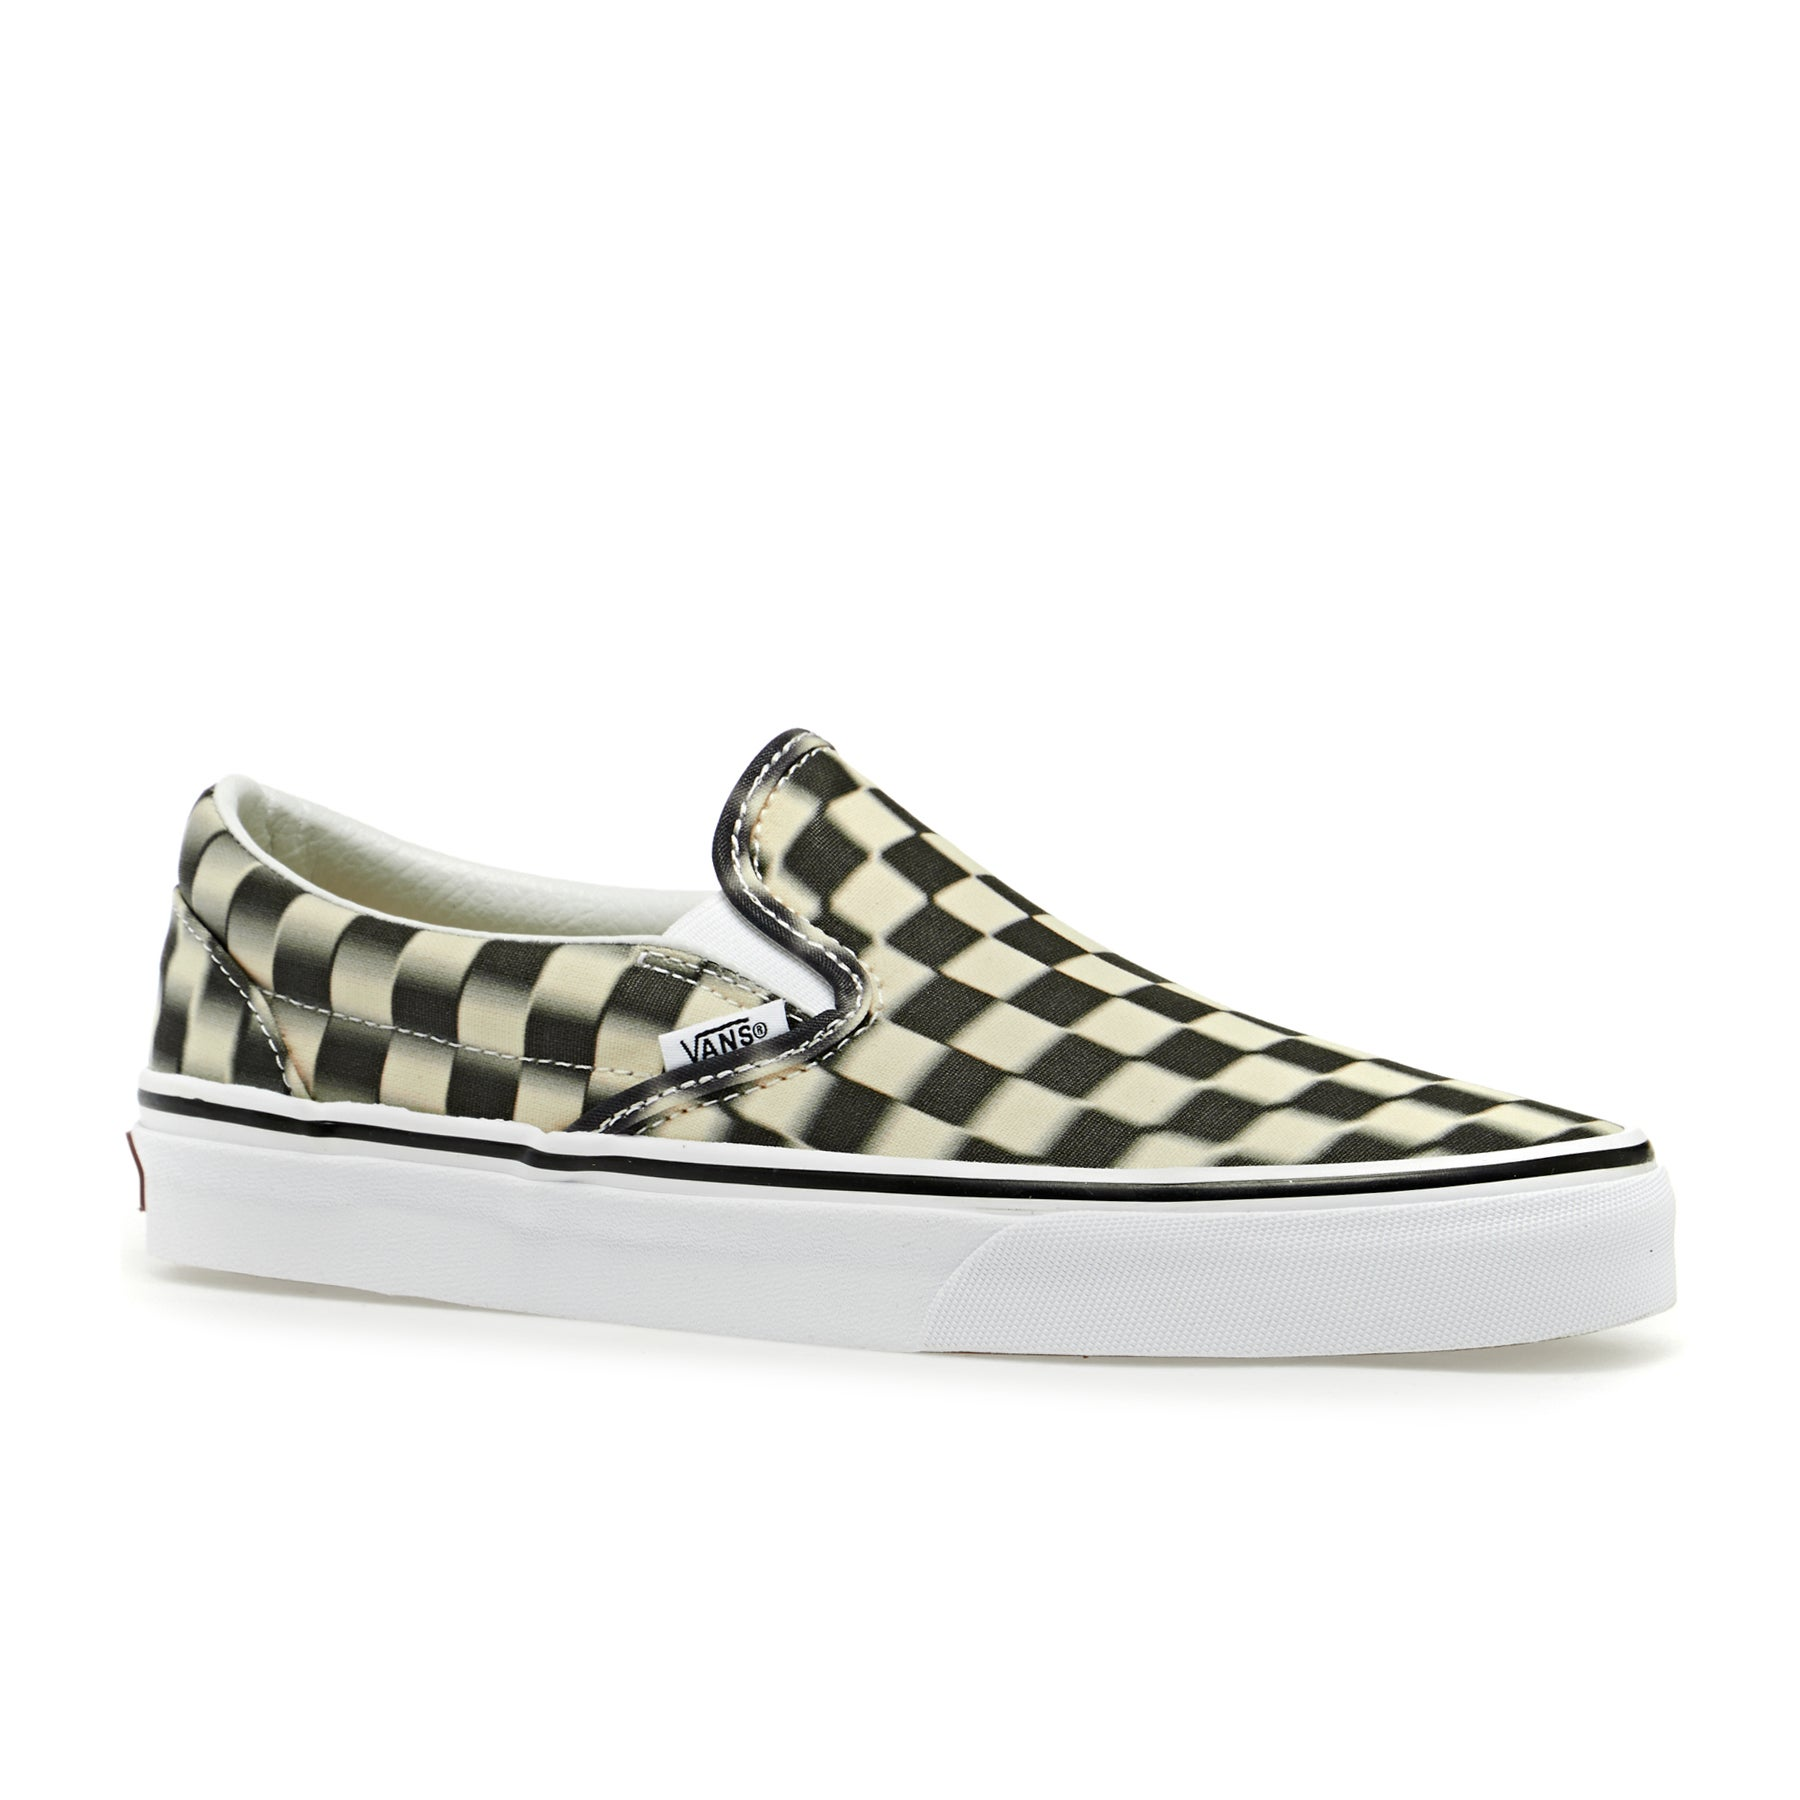 Vans Authentic Classic Dress Shoes - Checkerboard   Black Classic White